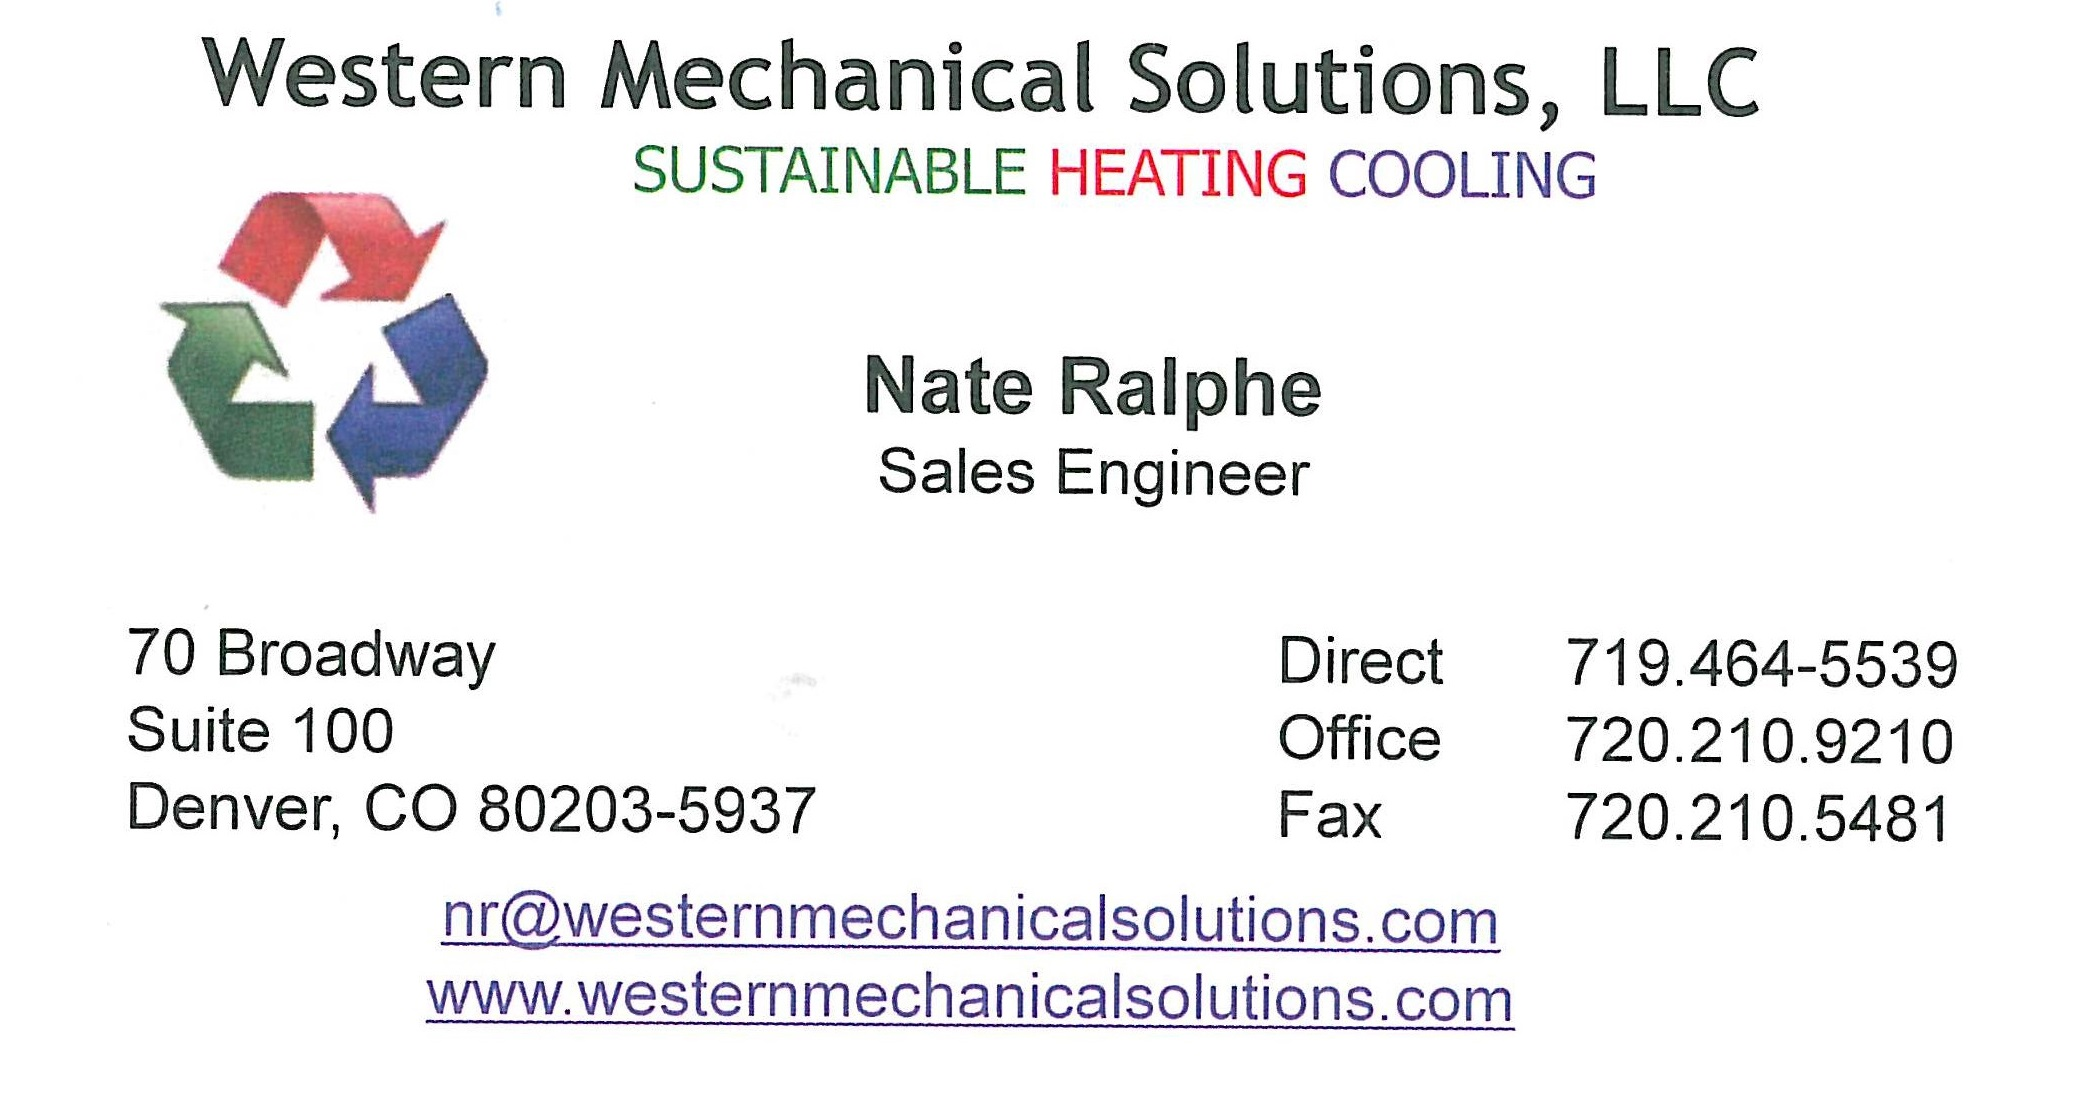 Nate Ralphe Business Card2 08272018